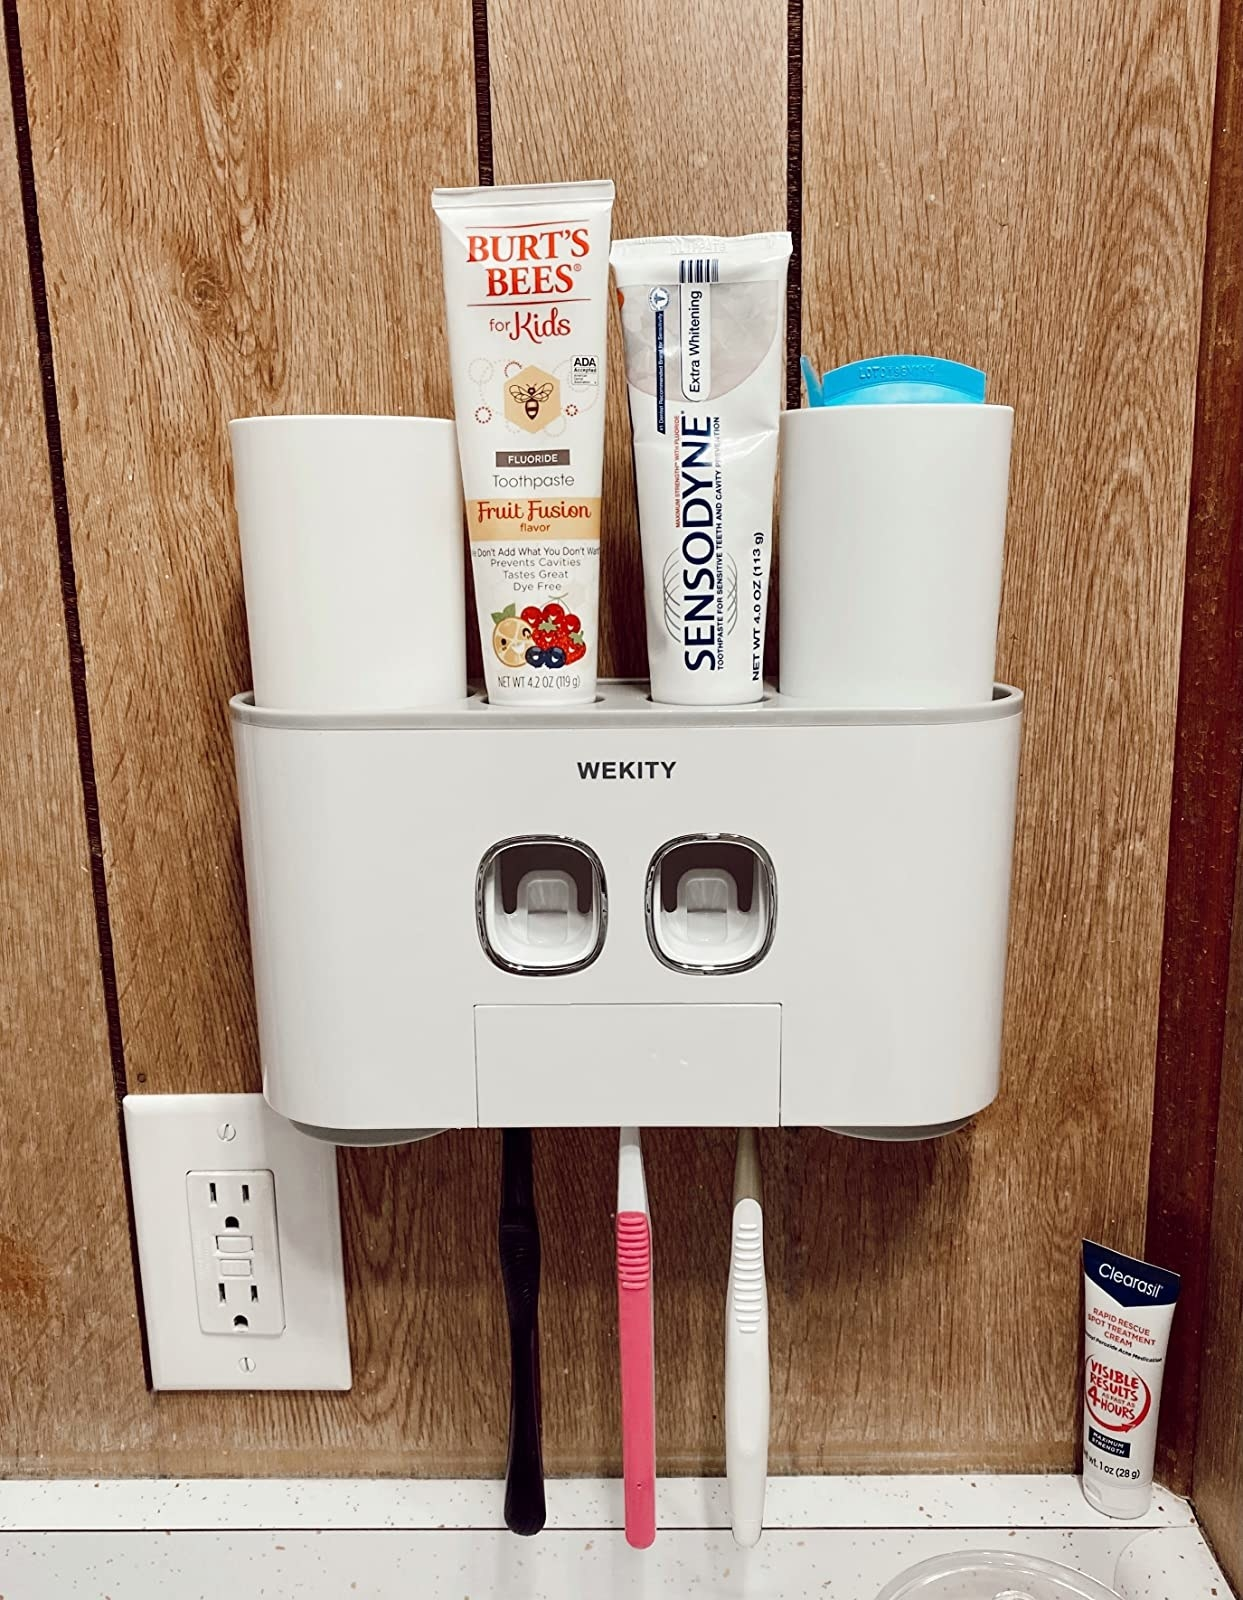 the white wall mounted toothbrush holder